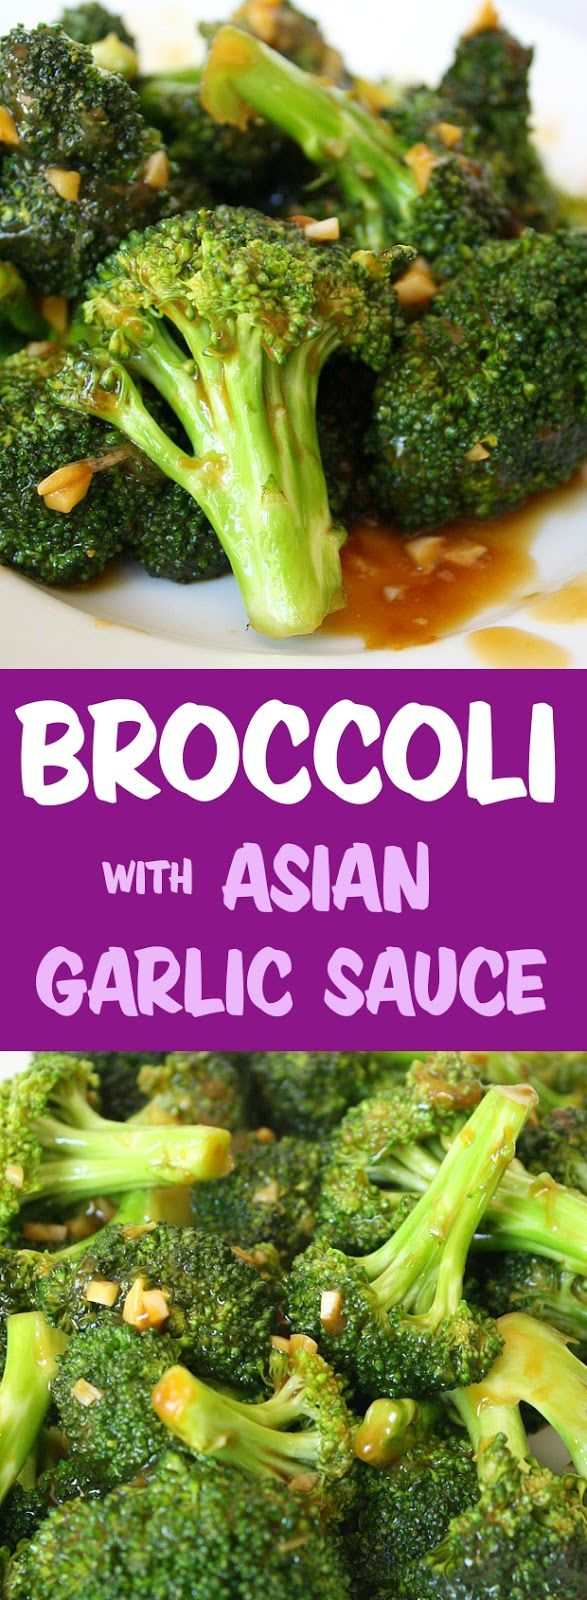 Broccoli with Asian Garlic Sauce images